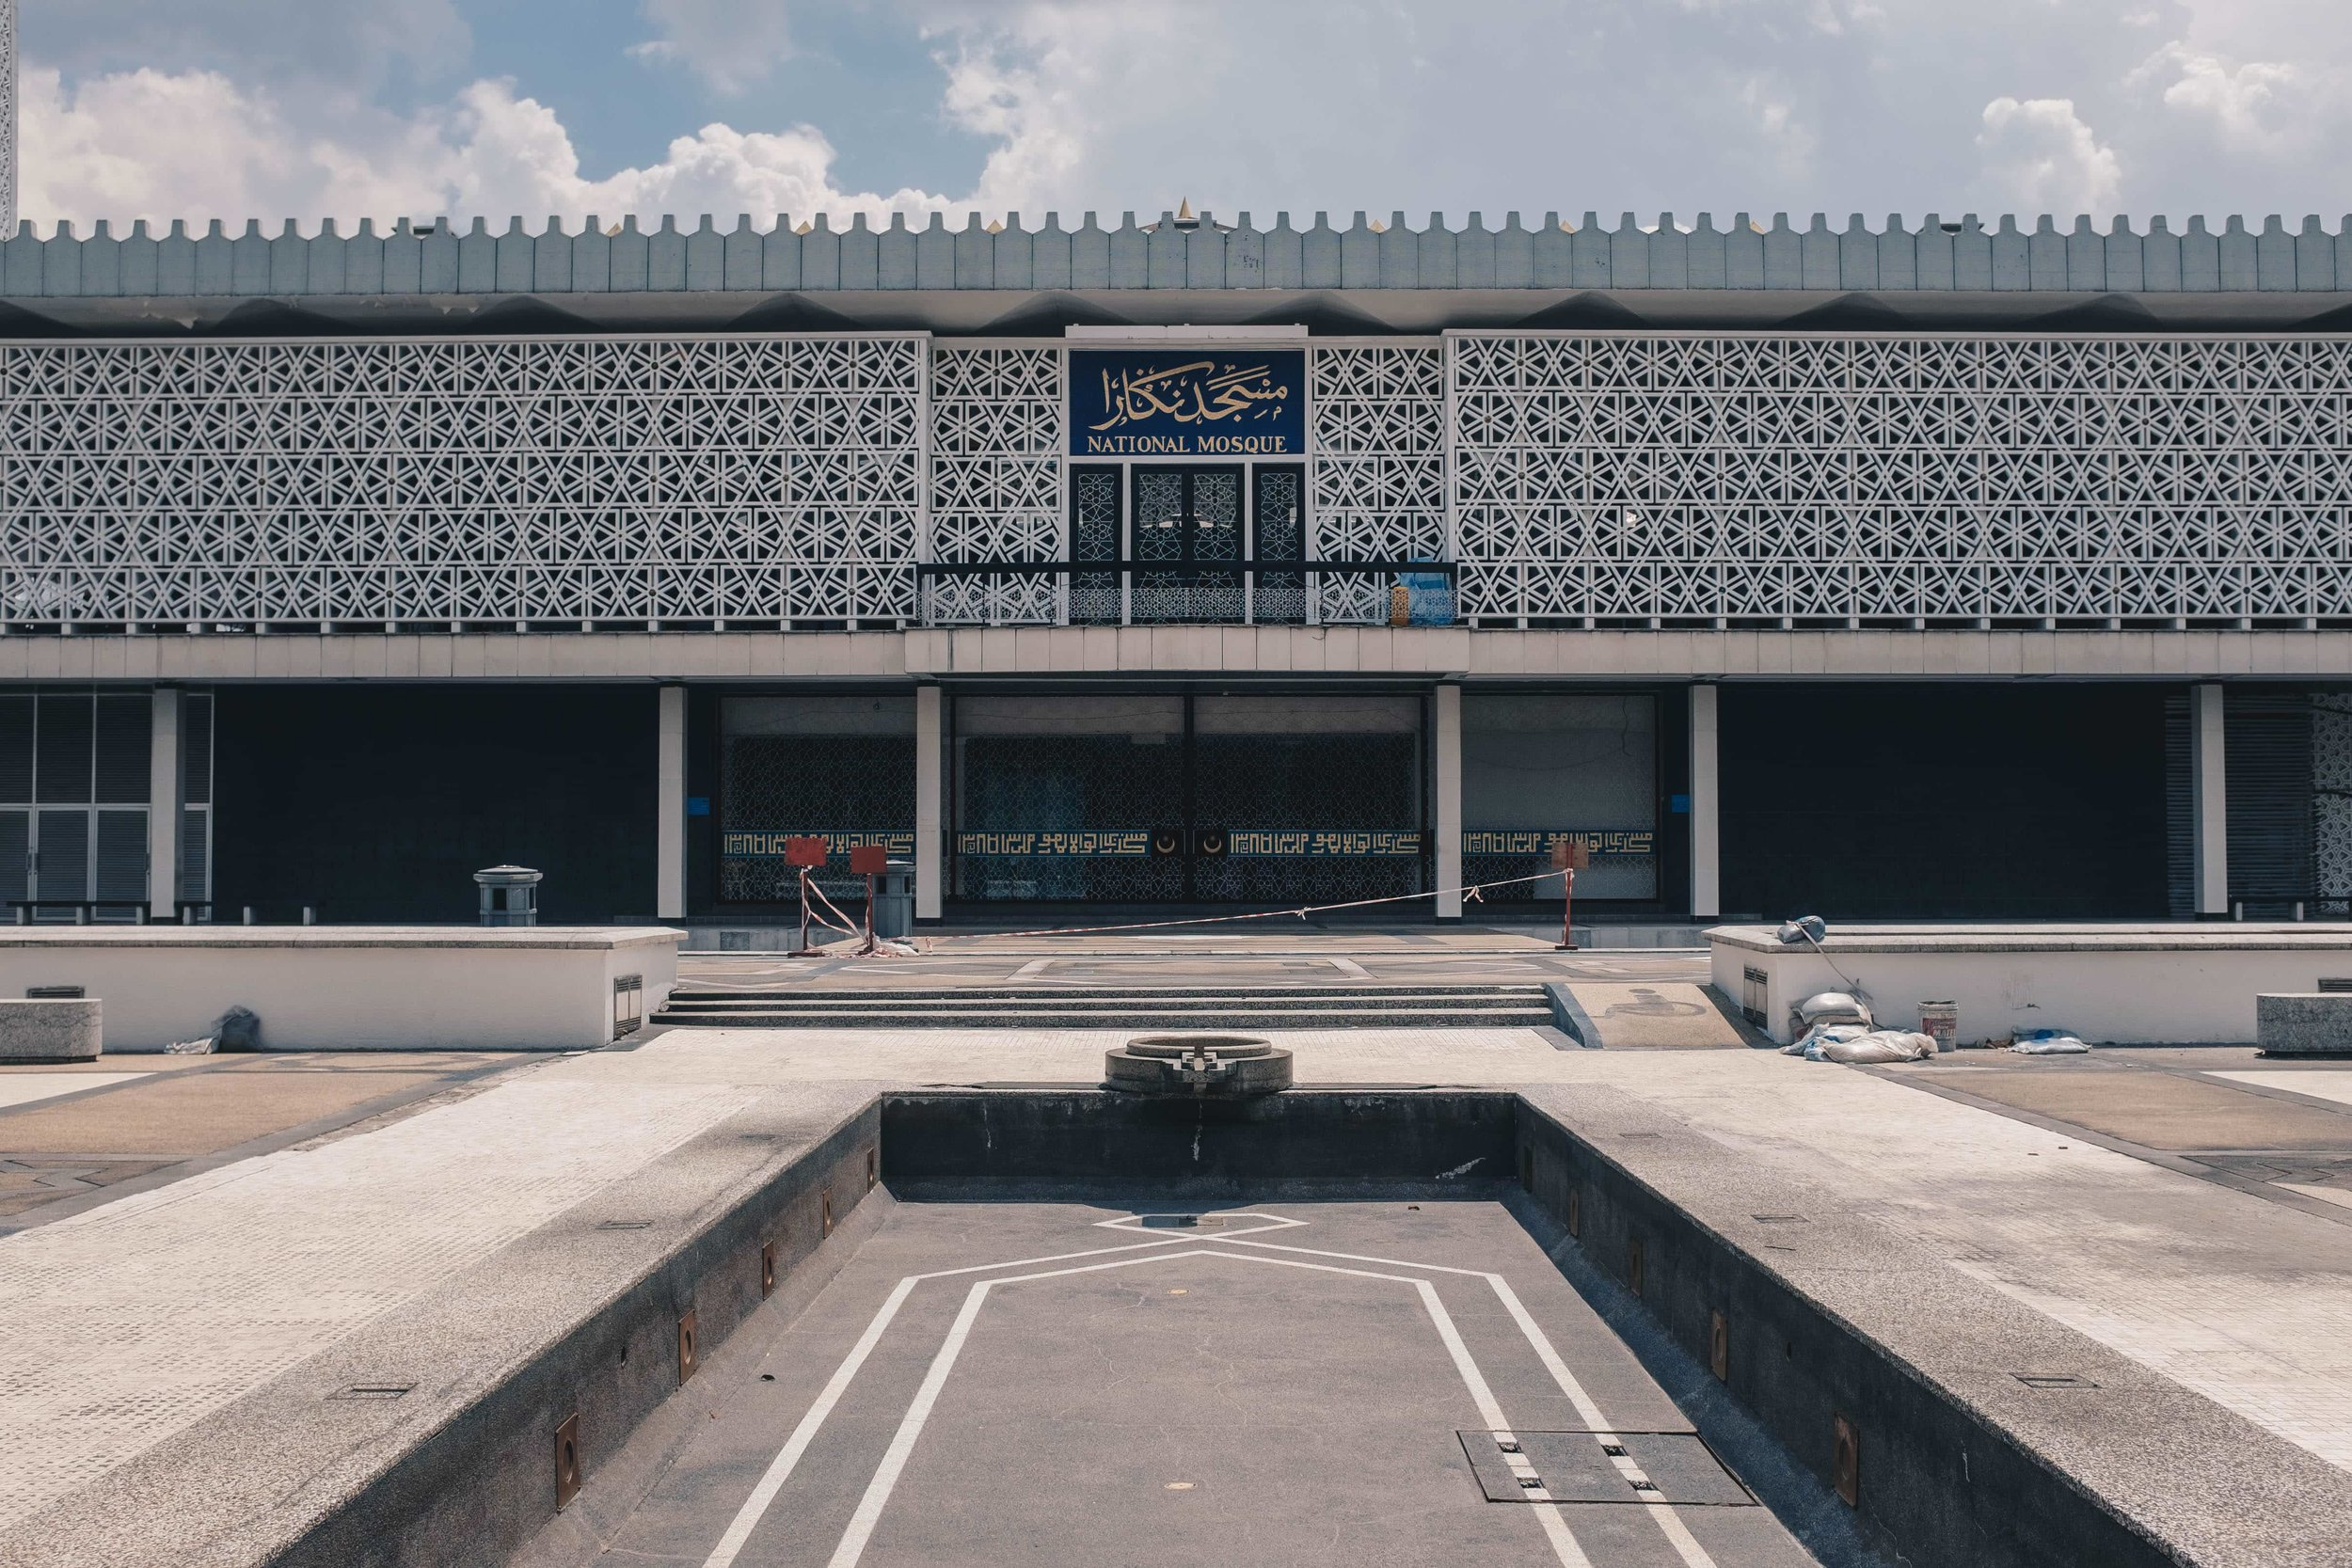 The National Mosque of Malaysia (in Kuala Lumpur) was built with an ambitious modernist style